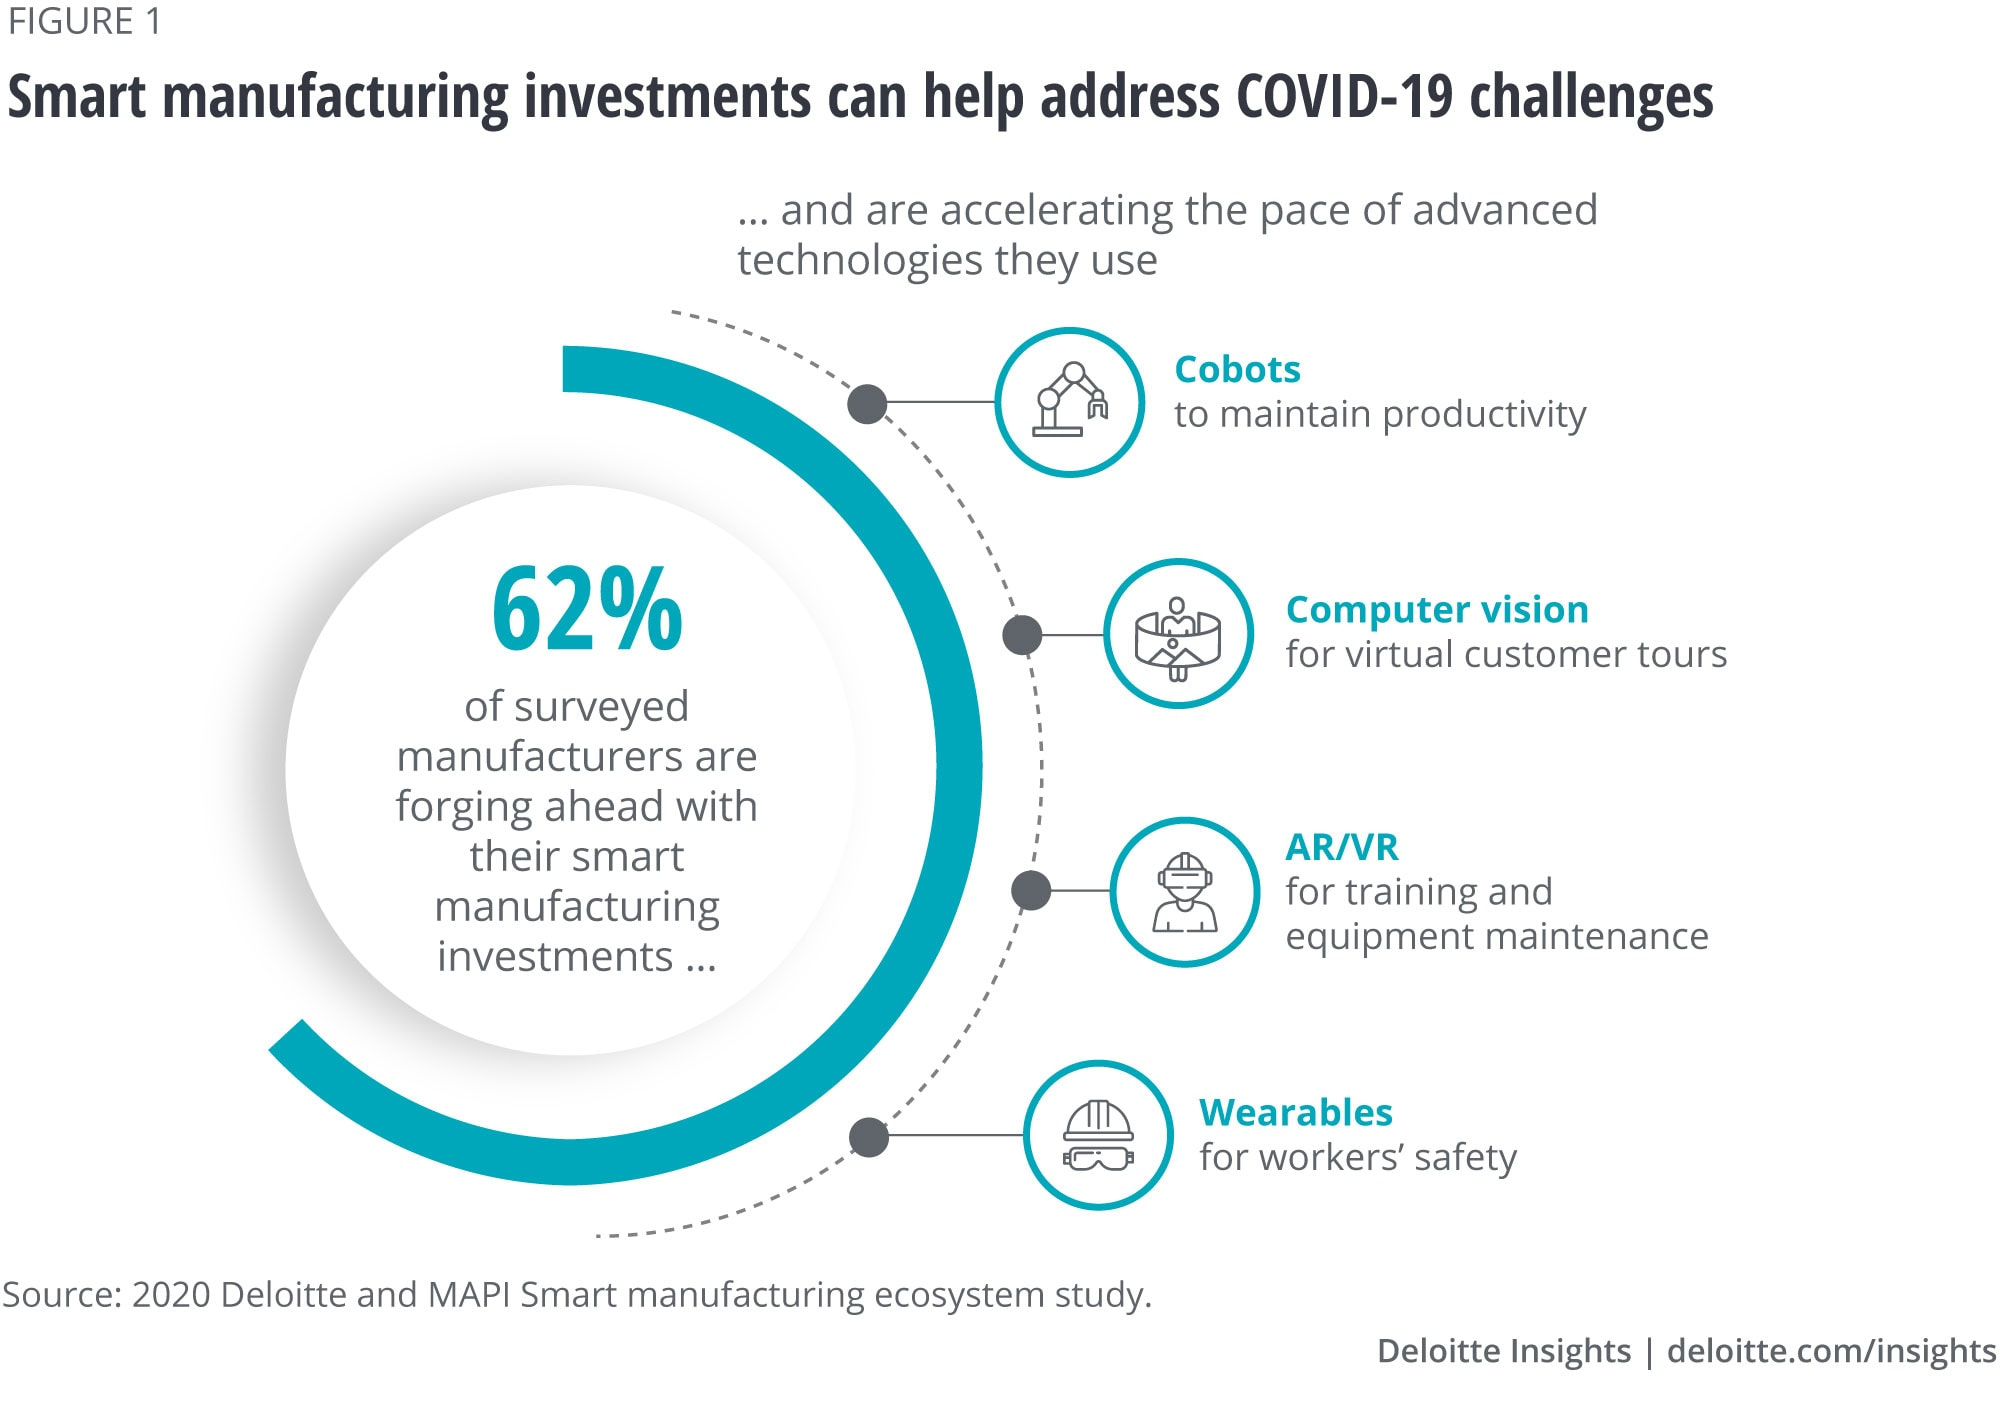 Smart manufacturing investments can help address COVID-19 challenges